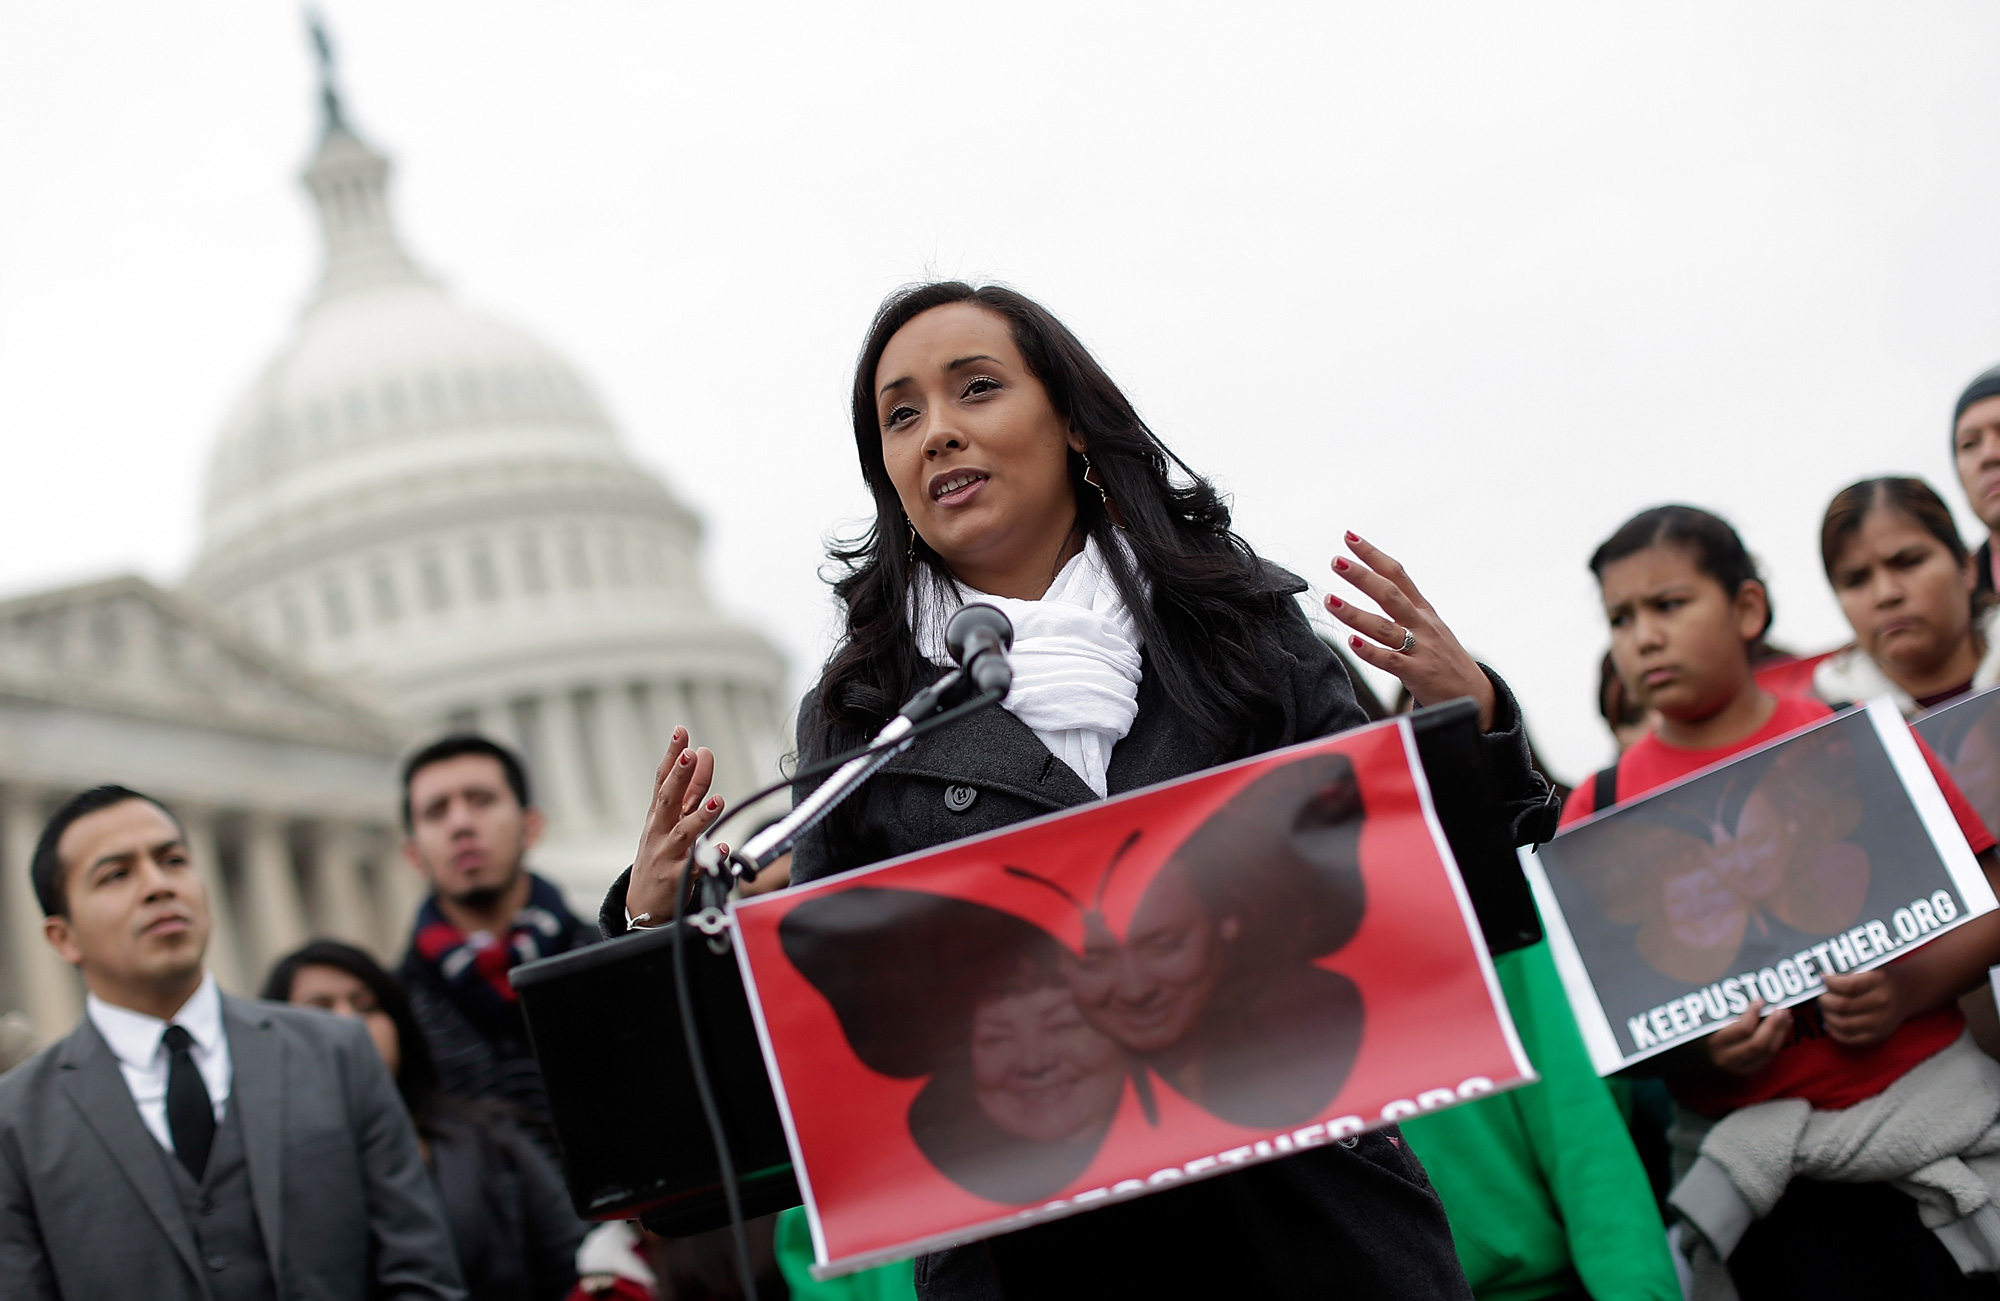 Erika Andiola, who recently resigned her position in the congressional office of Rep. Rep. Kyrsten Sinema (D-AZ), speaks at a press conference held by the Dream Action Coalition on immigration reform December 4, 2013 in Washington, DC. Andiola's mother, Maria Andiola, faces deportation proceedings being conducted by Immigration and Customs Enforcement. (Photo by Win McNamee/Getty Images)